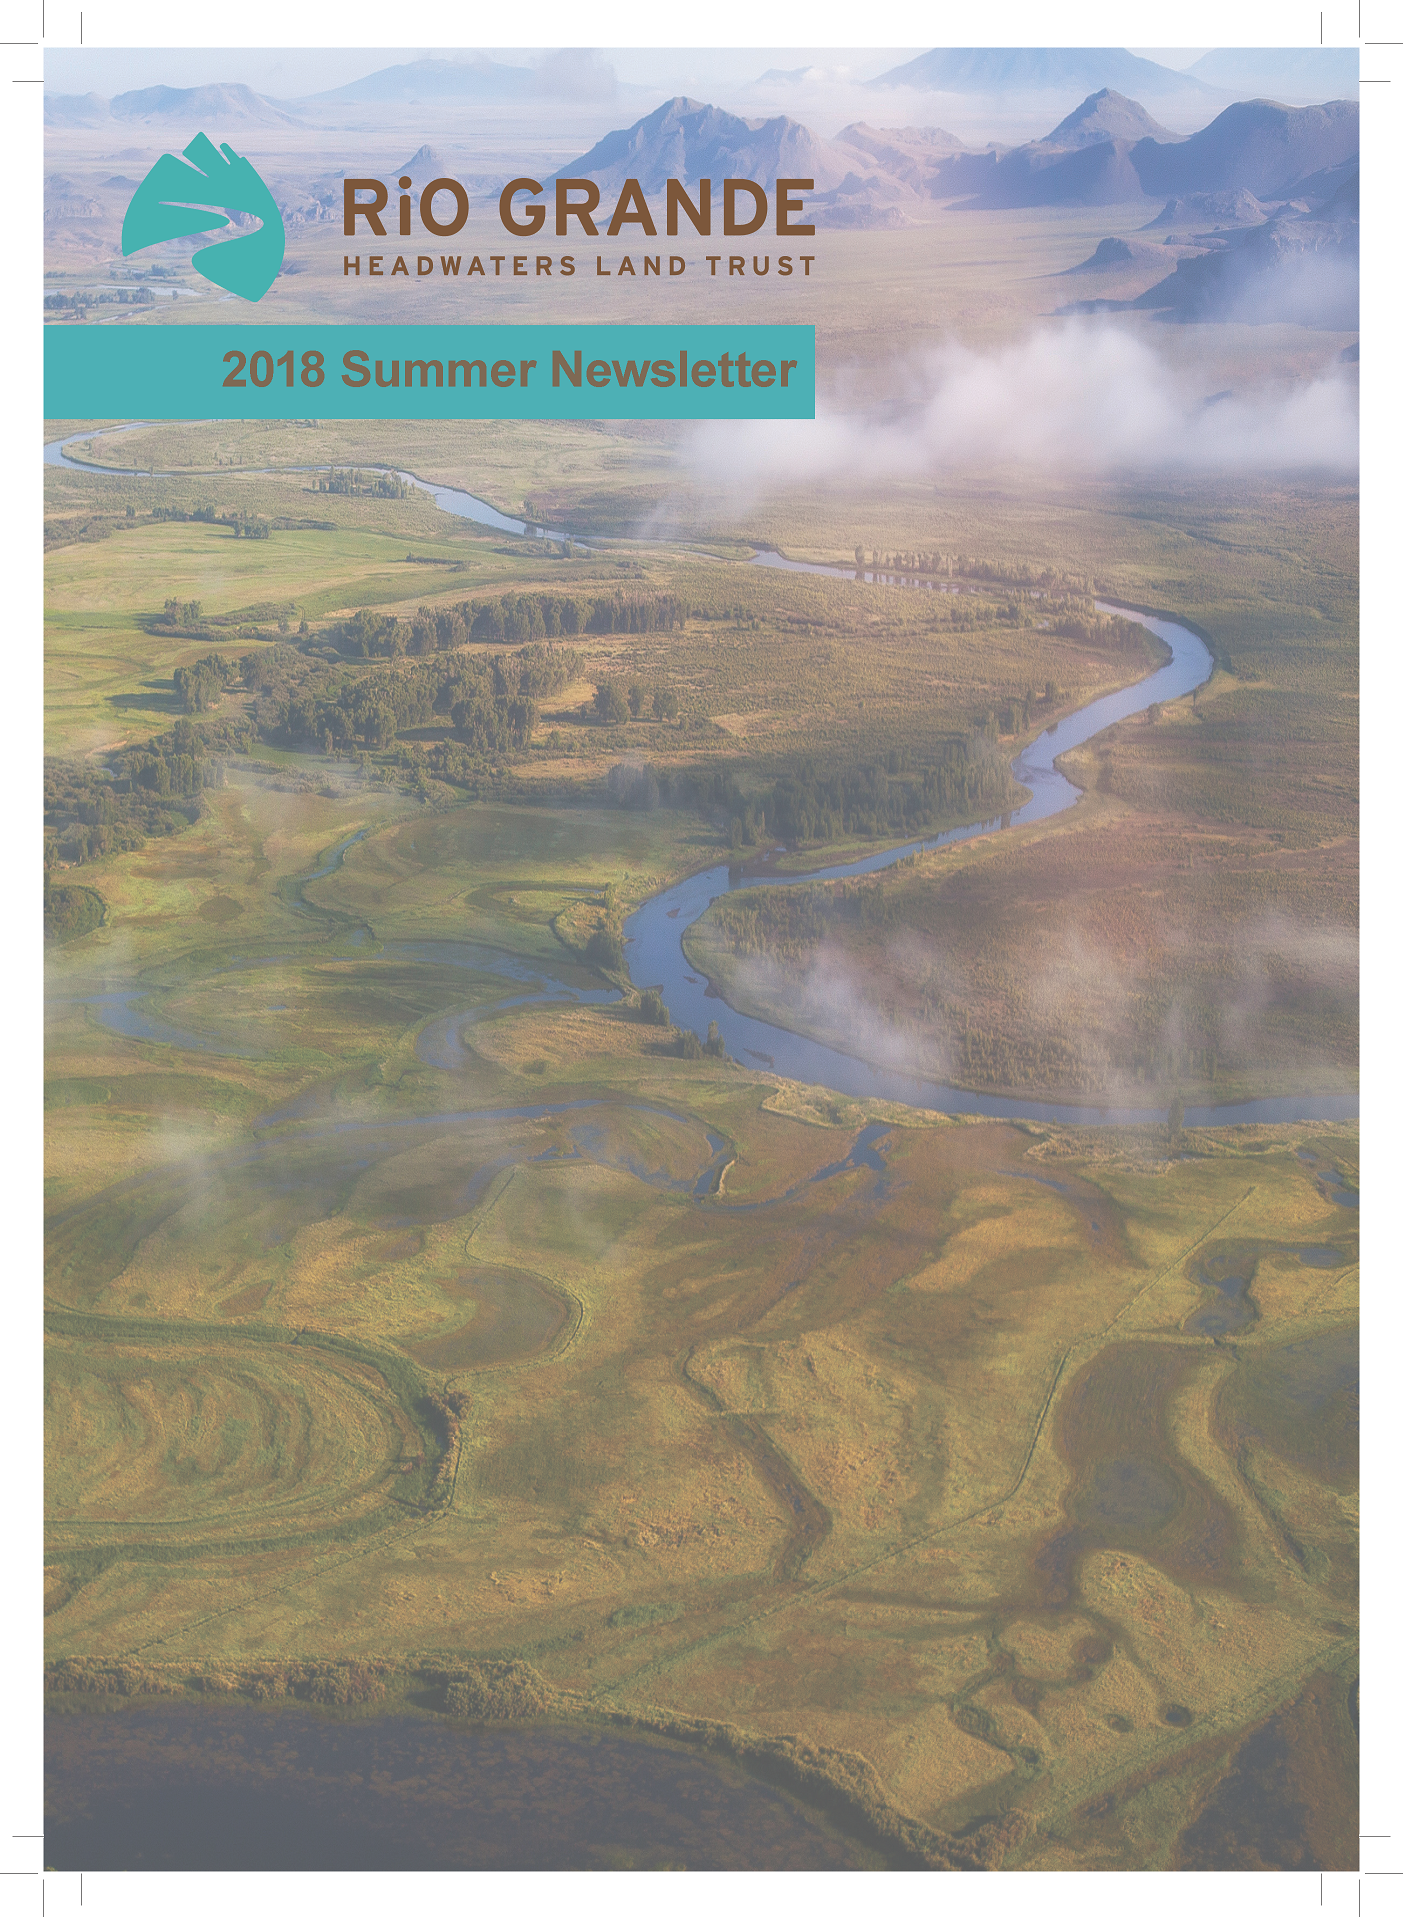 2018 Summer Newsletter cover png.png